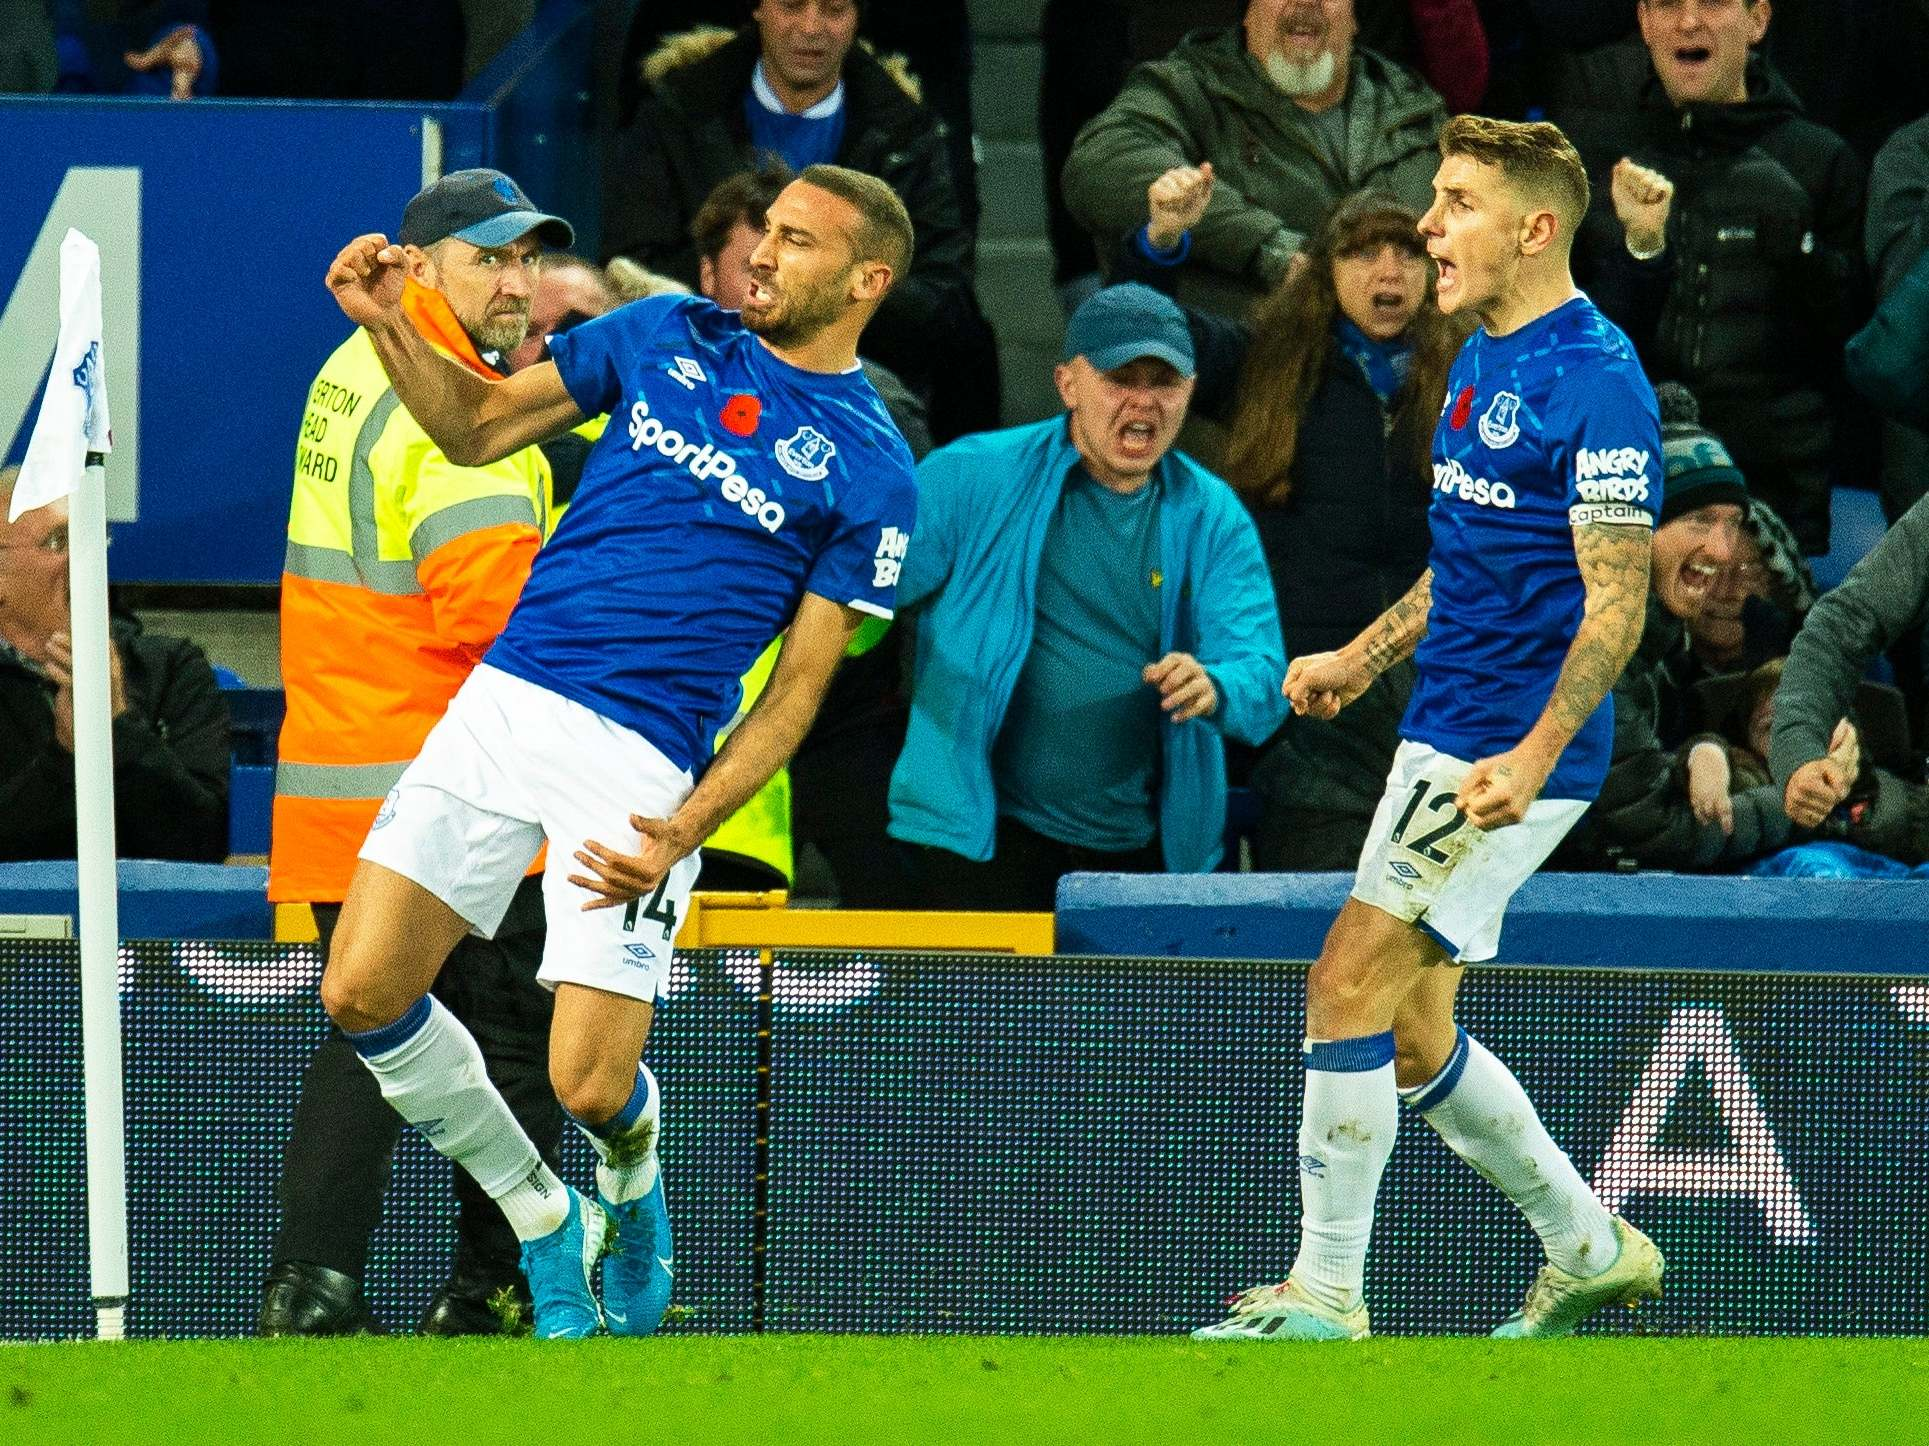 Everton vs Tottenham result: Cenk Tosun scores late equaliser after match  marred by Andre Gomes injury | The Independent